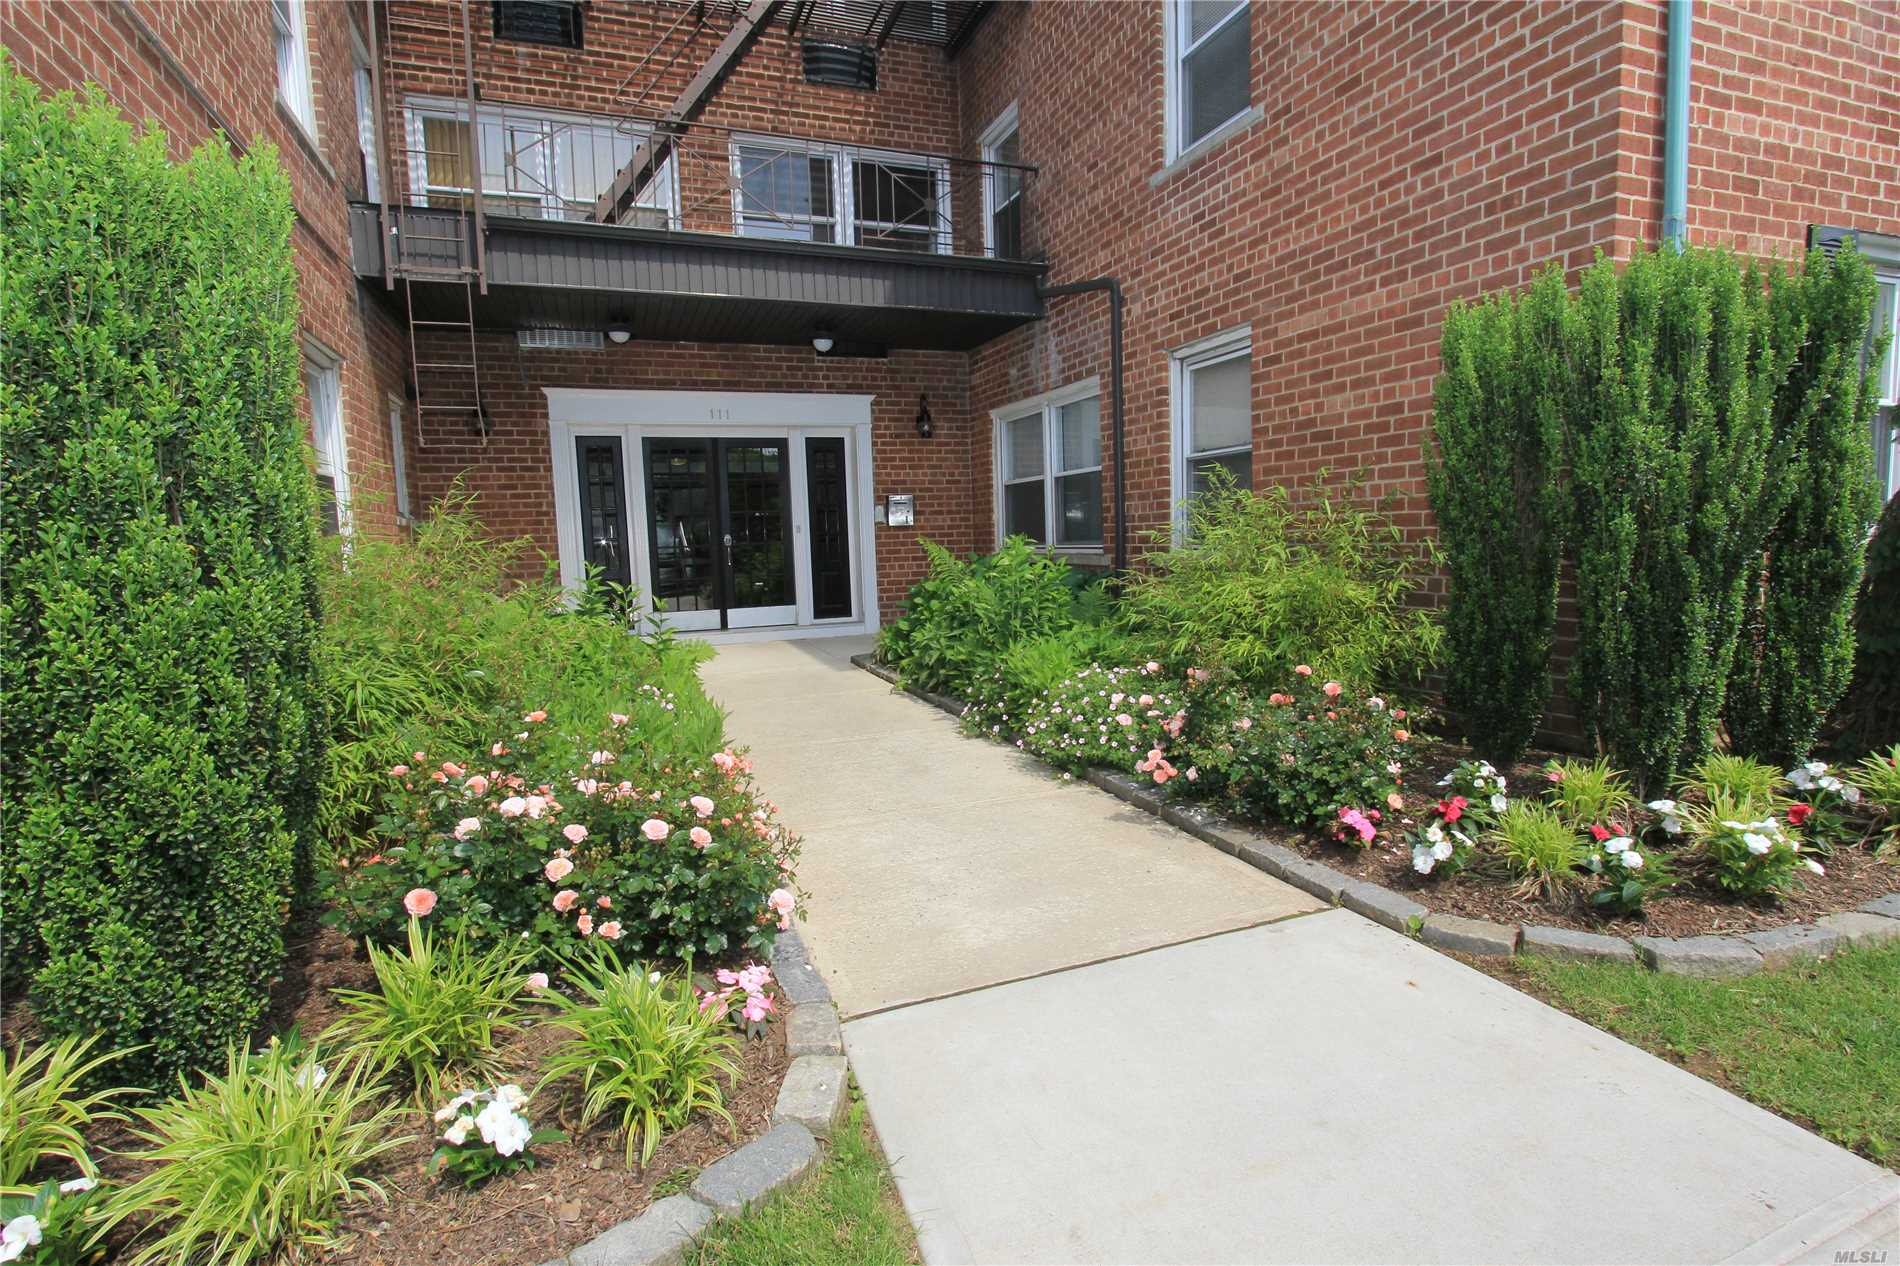 Spacious 1Br Corner 1st Fl. Unit ~ Brand New Living Room Recessed Lighting ~ Brand New Kitchen Tile Backsplash ~ Updated Kitchen W/ Granite Countertops & Stainless Steel Appliances - Hardwood Floors - 4 Closets - Laundry Room @ End Of Hallway - 6 Min. Walk To Village Shopping & Lirr - Rockville Centre Schools - Taxes Included In Maintenance